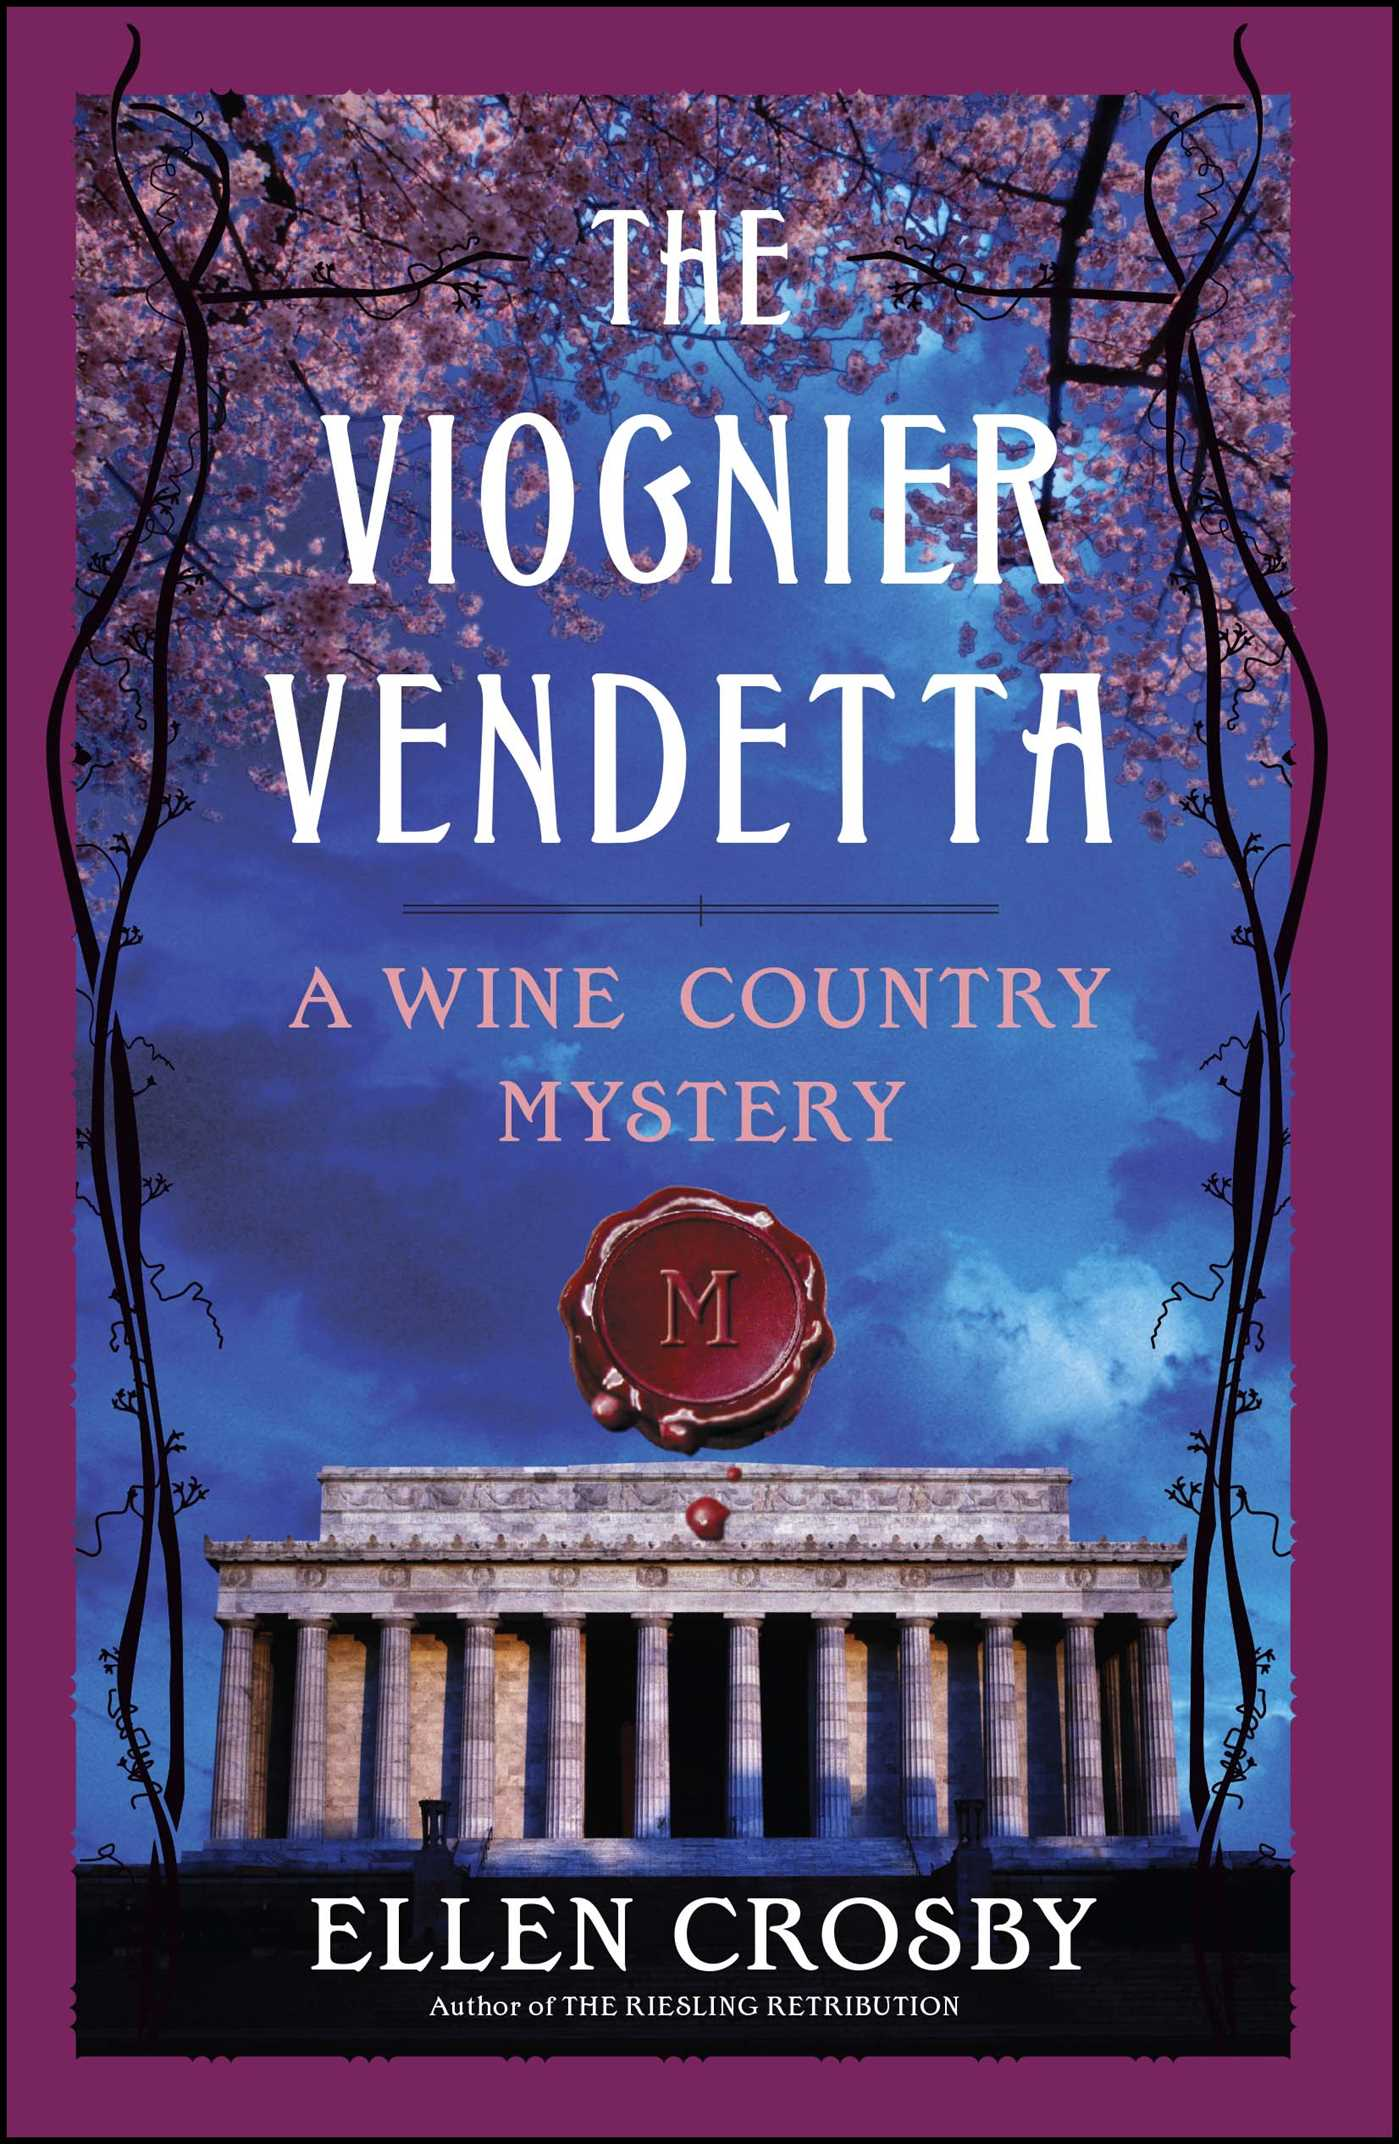 The viognier vendetta 9781439182925 hr